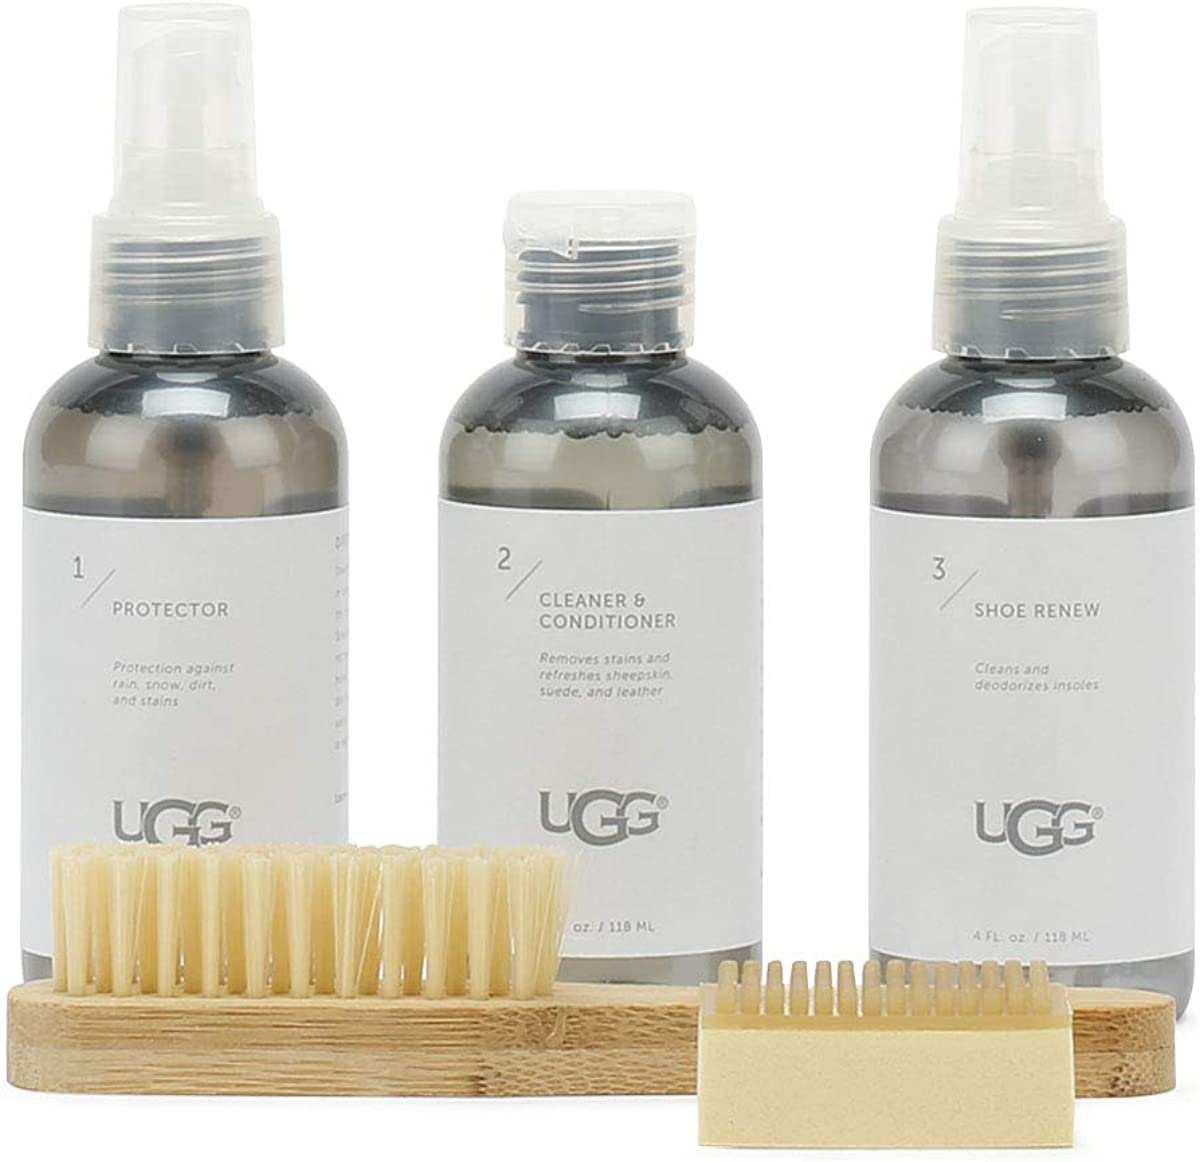 ugg cleaning kit